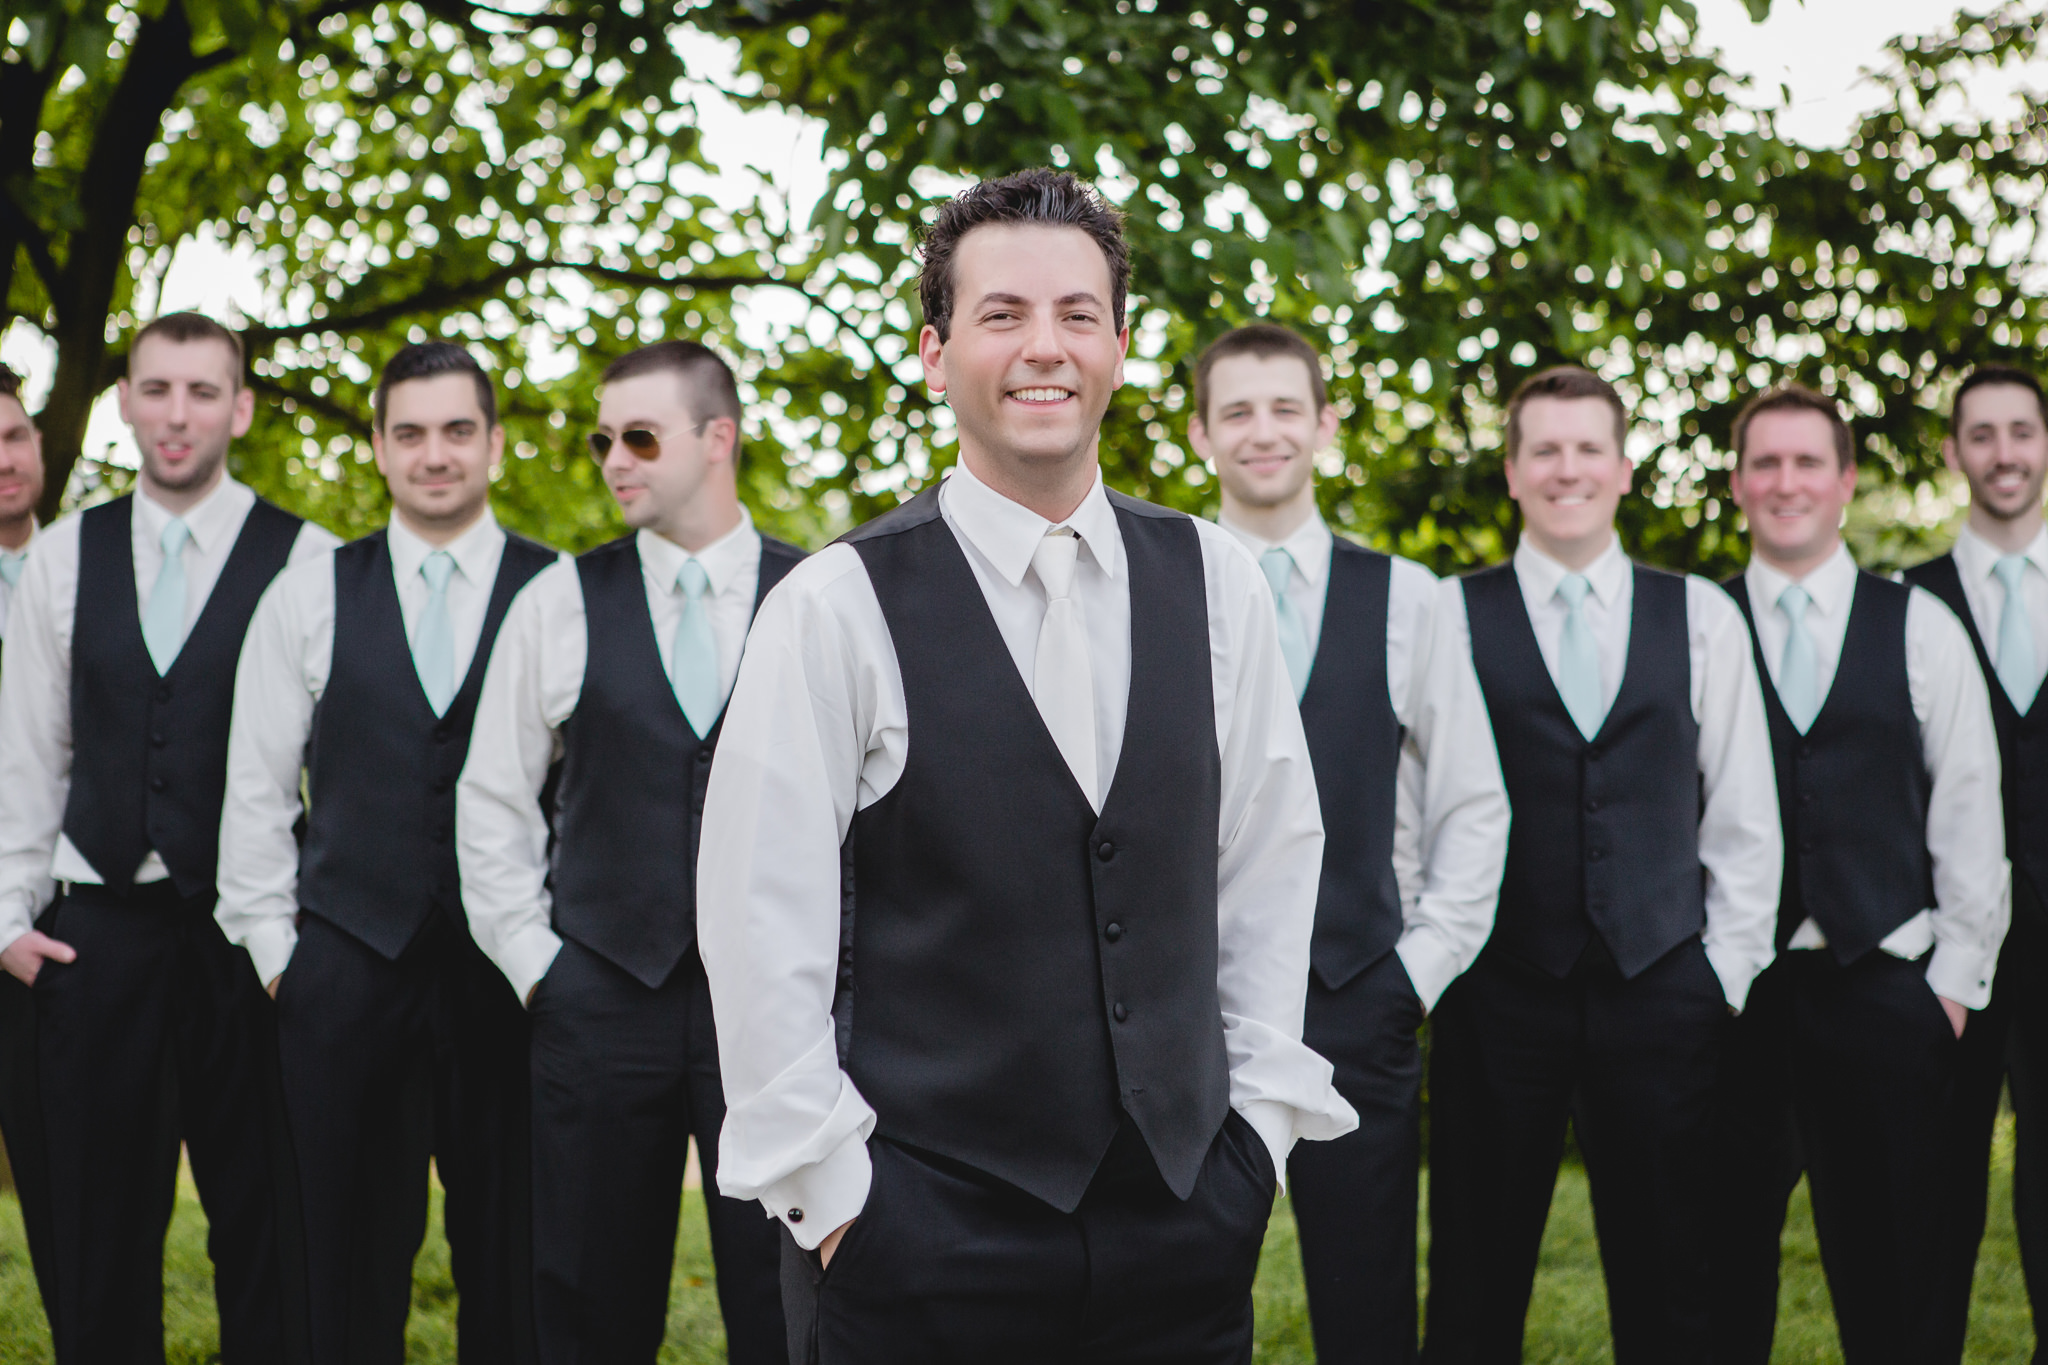 Groom poses with his groomsmen at his June wedding